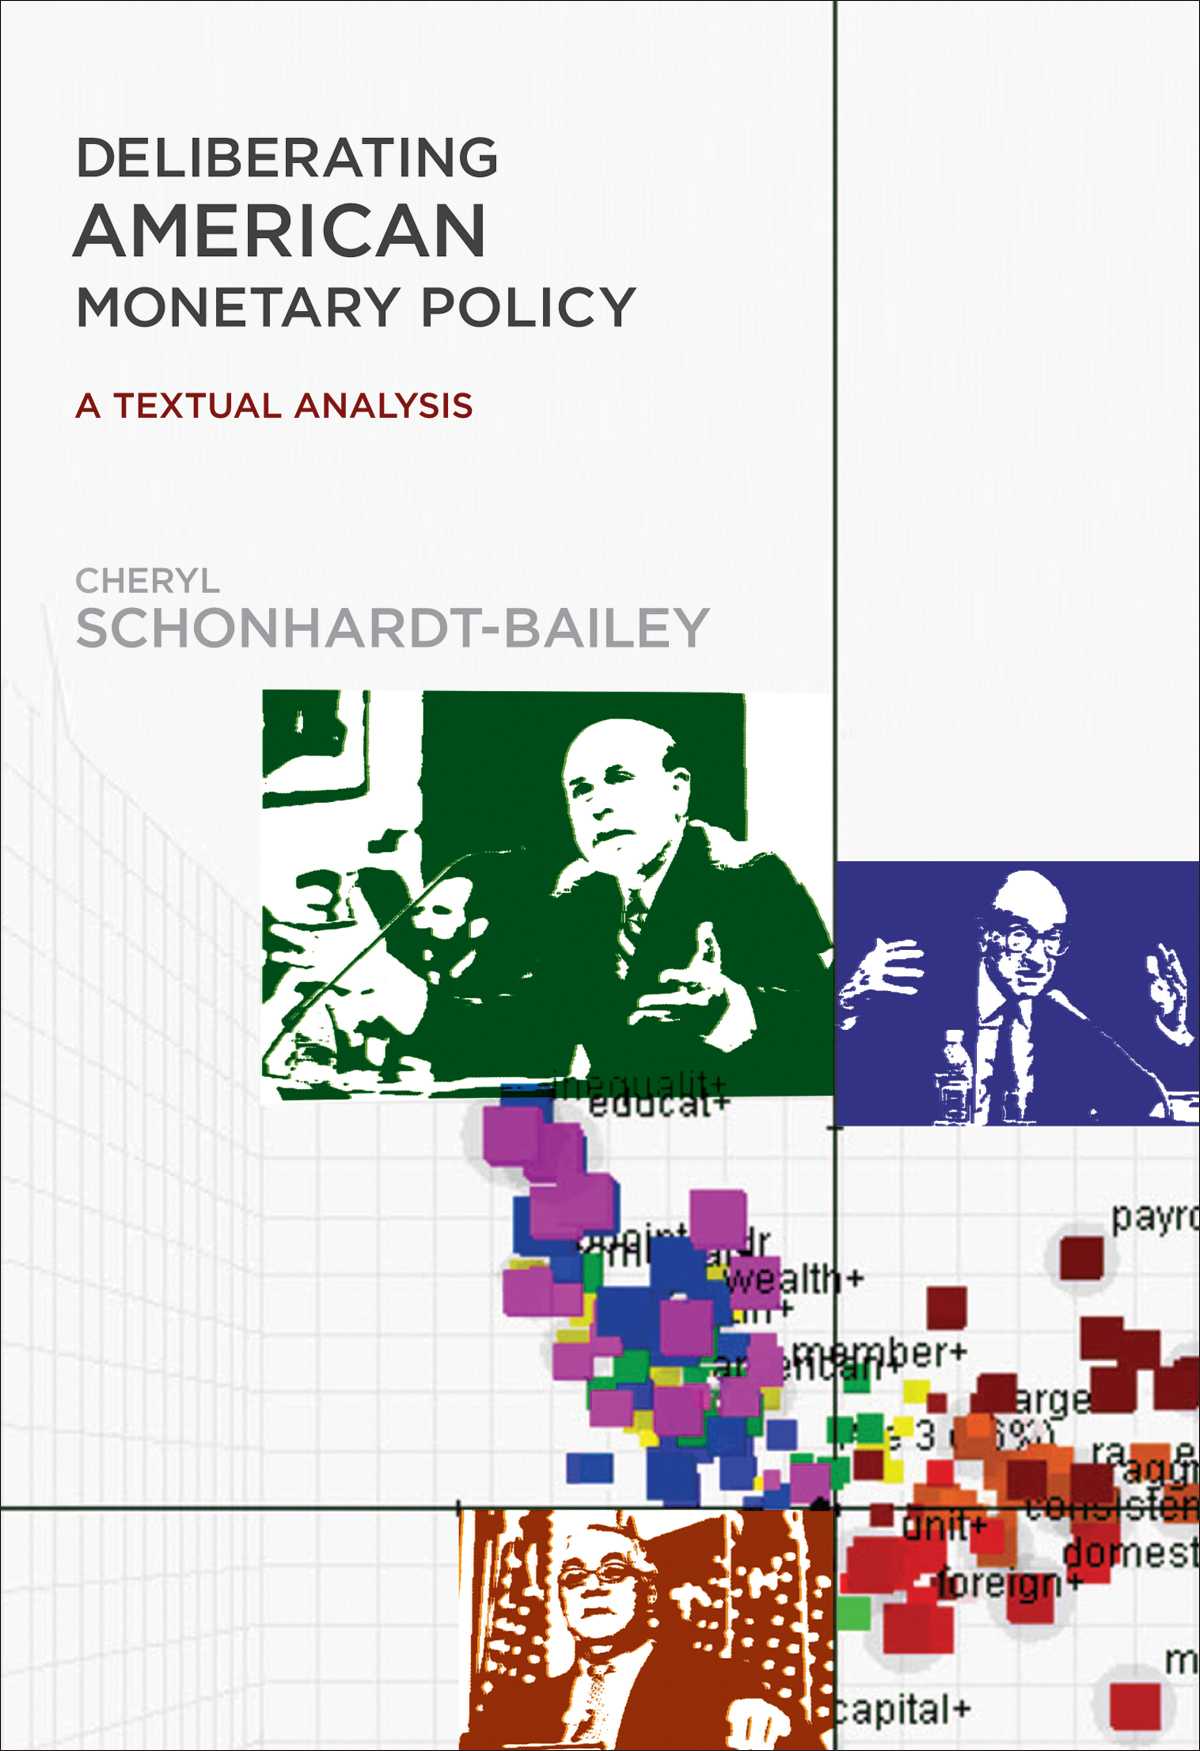 an analysis of the us monetary policy of 1995 Monetary rules and policy targets under managed exchange rates and capital controls: introduction an analysis of the us monetary policy of 1995.